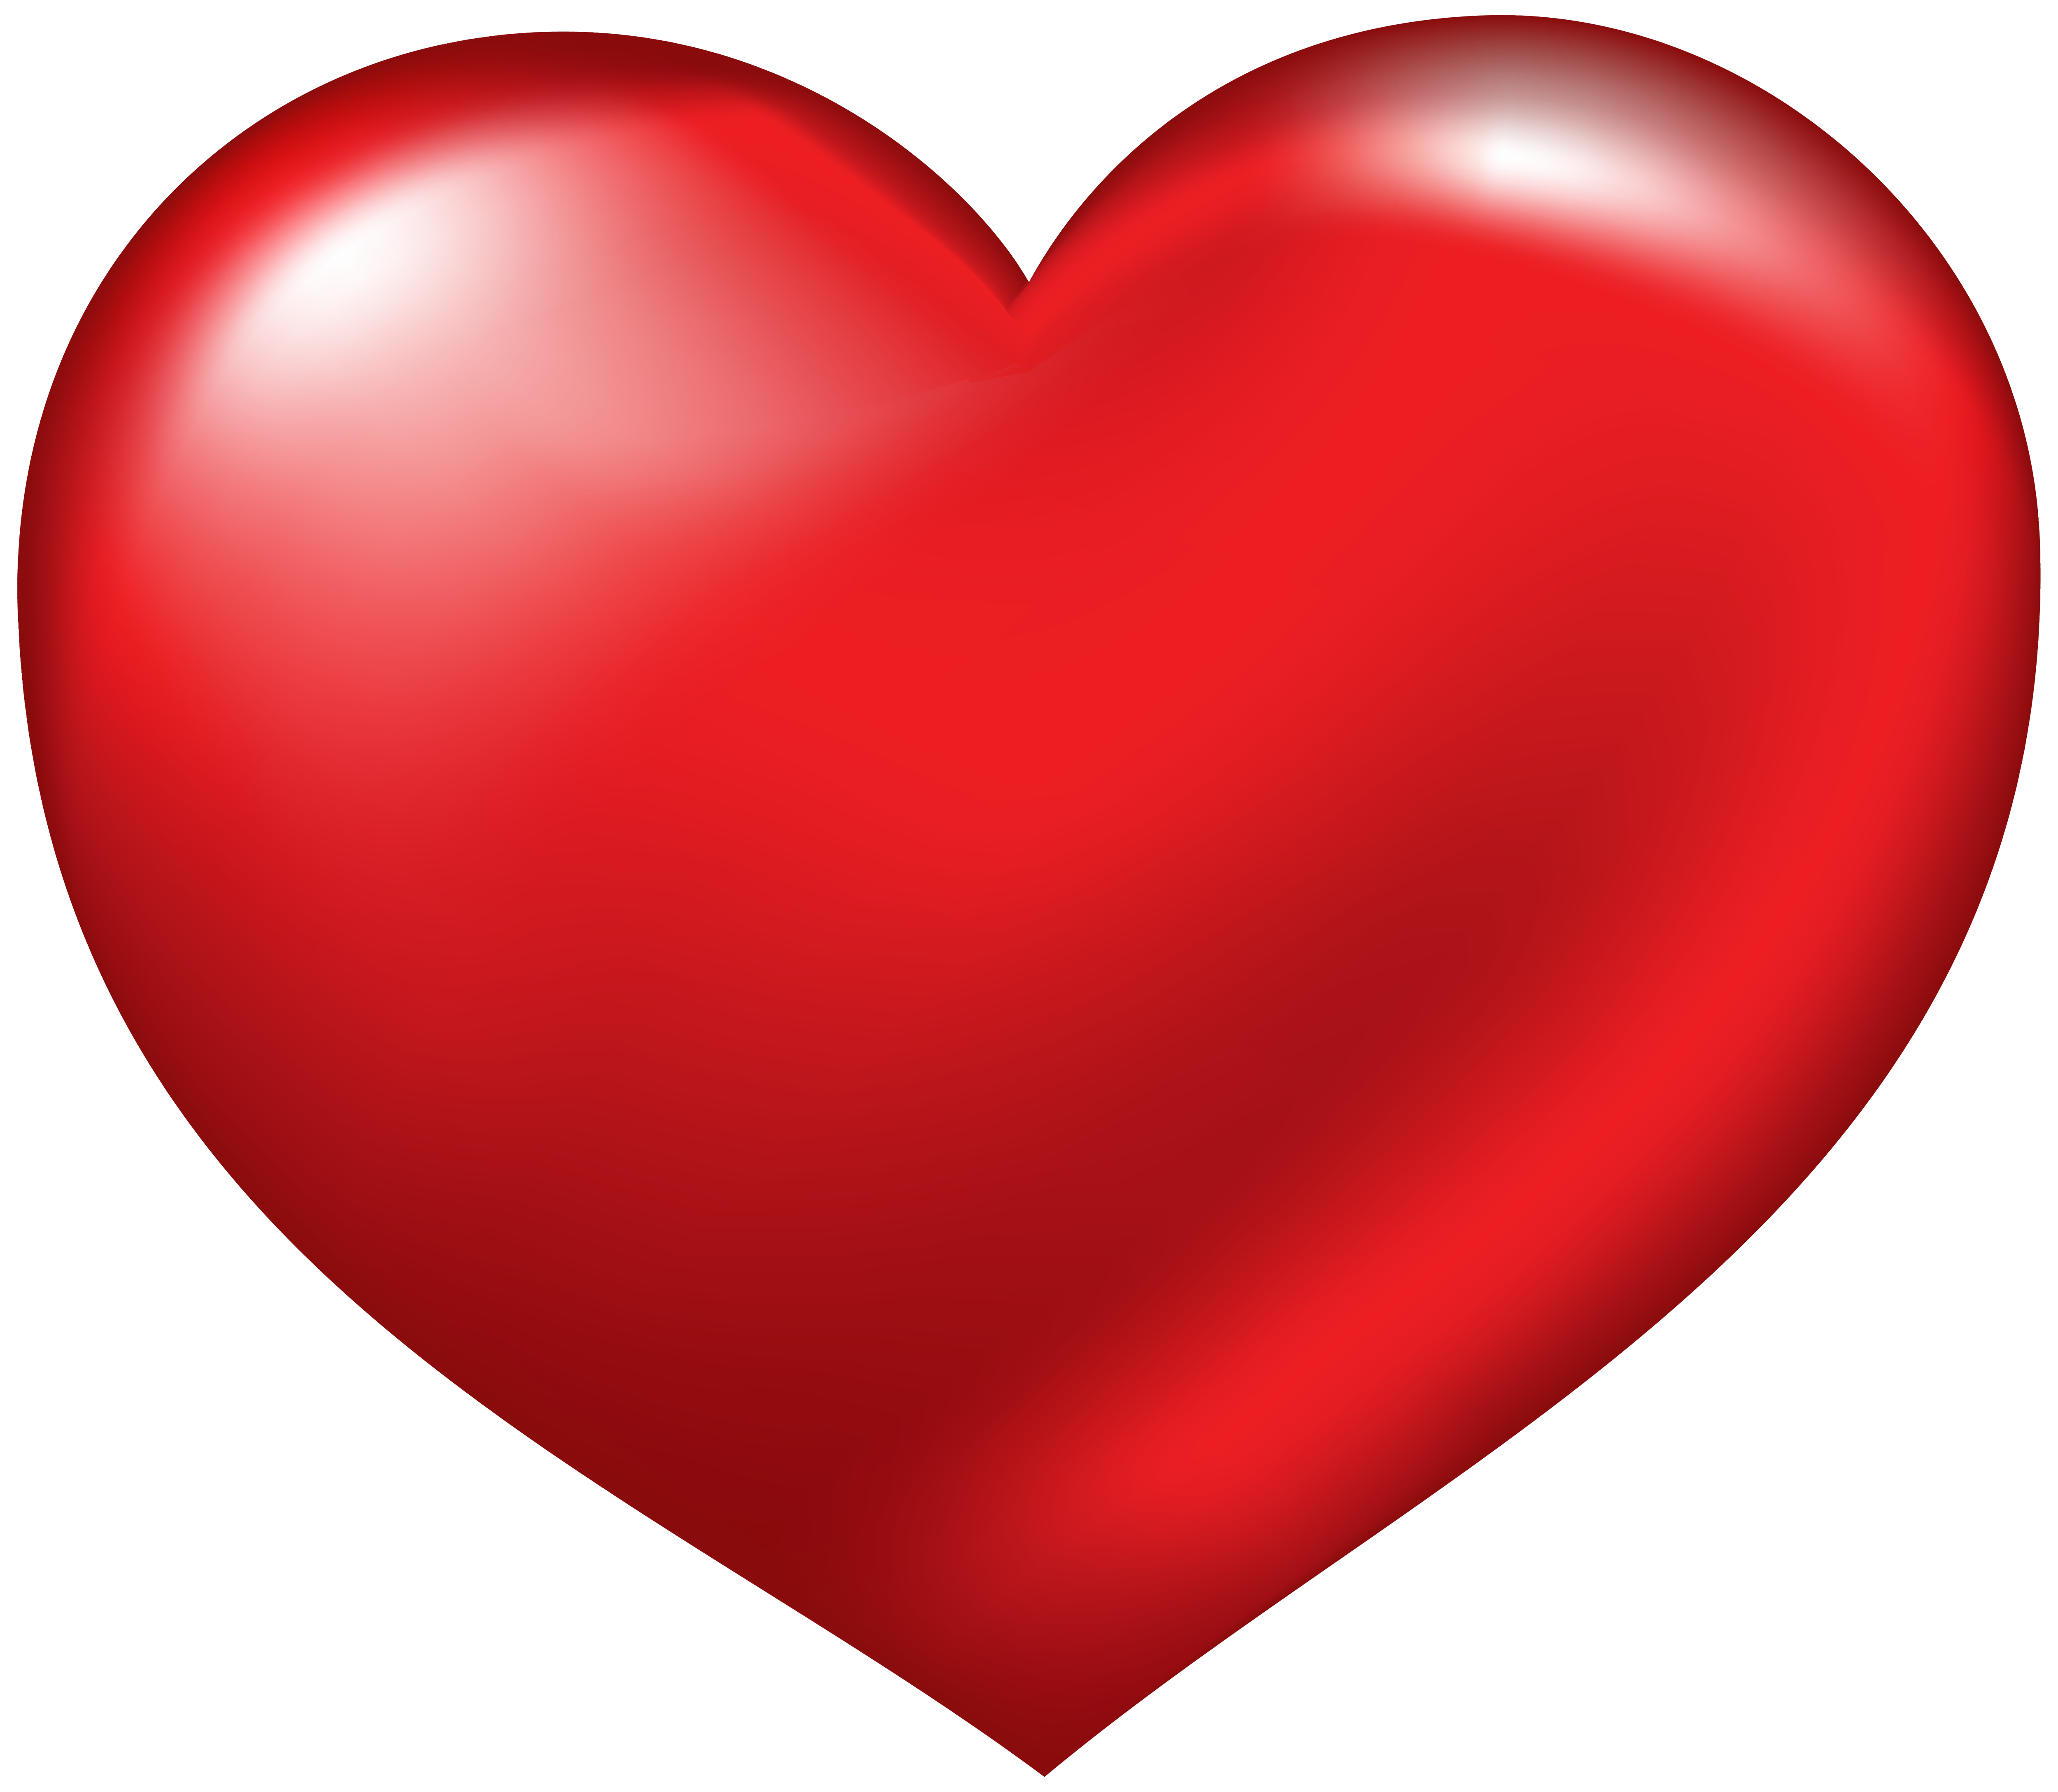 Red heart clip art heart clipart.